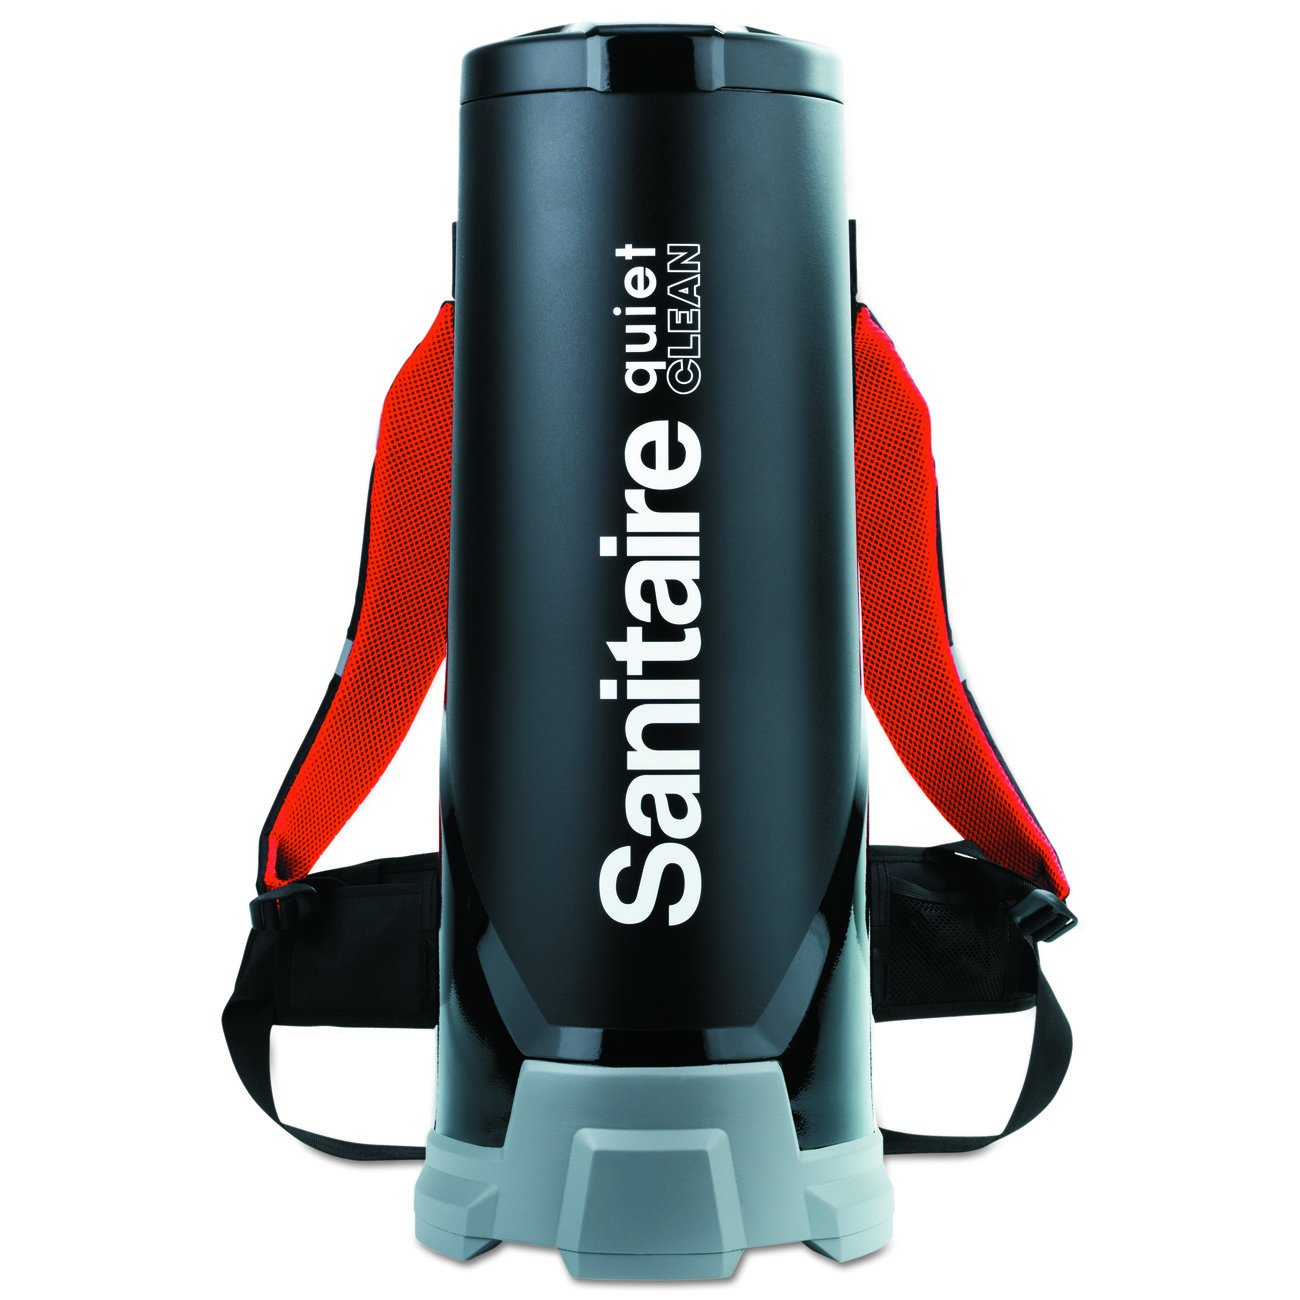 """Sanitaire SC530A Quiet Clean HEPA Backpack Vac, 10qt Tank Capacity, 32-1/4"""" Height, 12-1/2"""" Width, 14-7/8"""" Length, ABS Plastic, Black"""